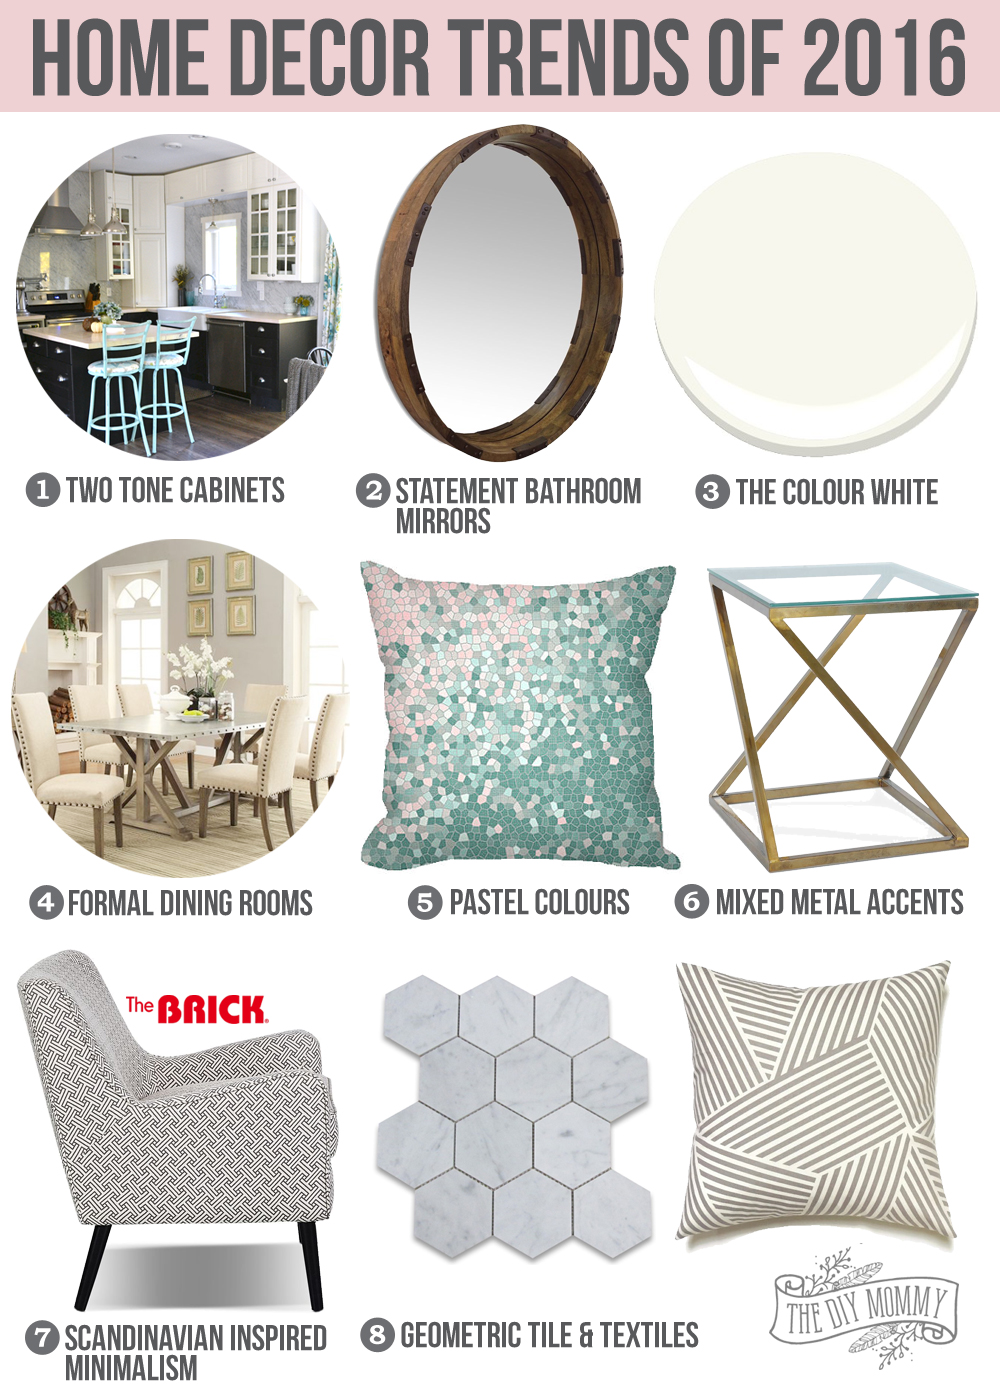 2016 Home Decor Trends + Affordable Sources!